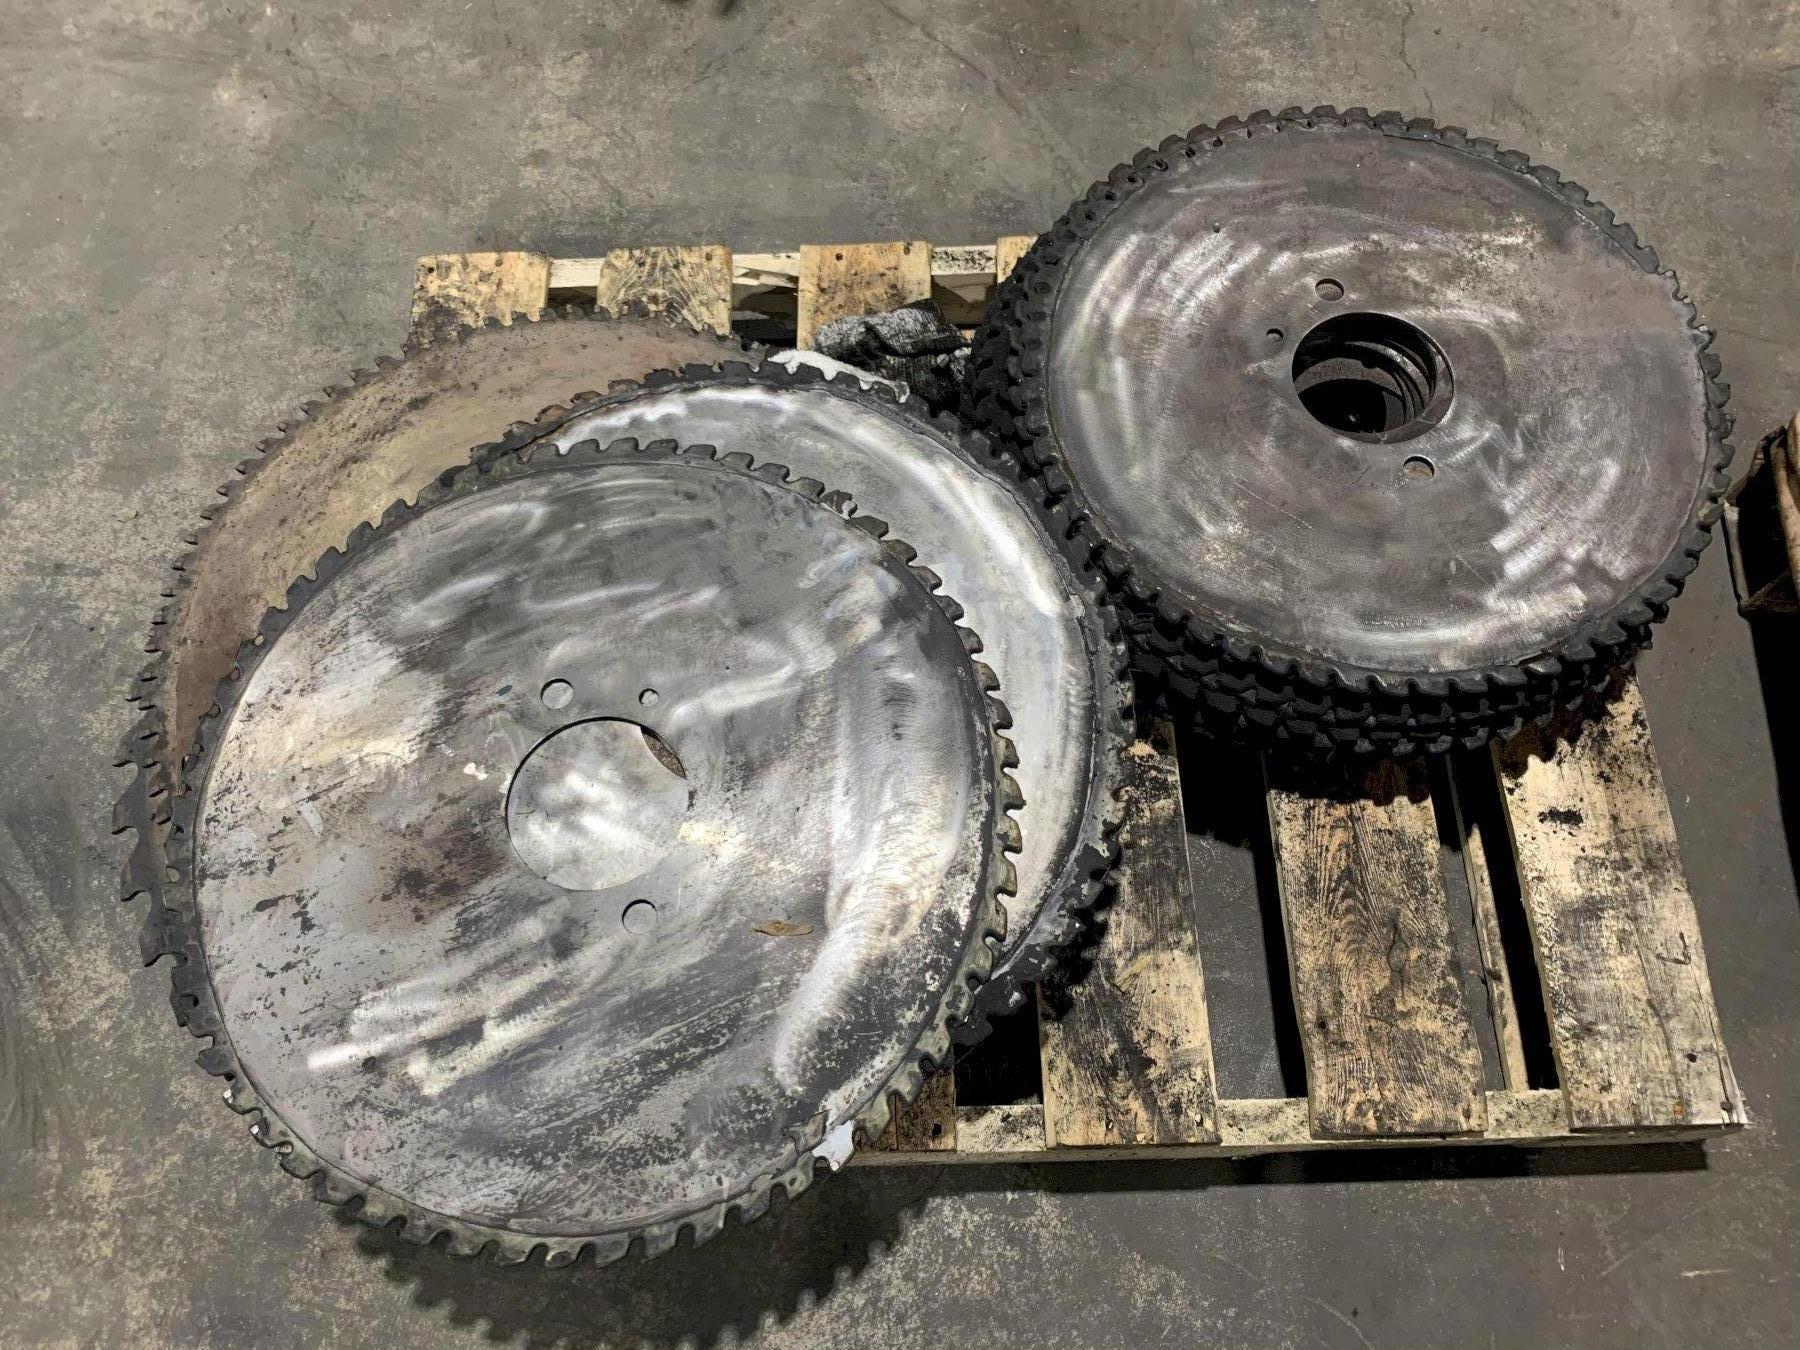 SAW BLADES ASSORTED LOT - STOCK #15334